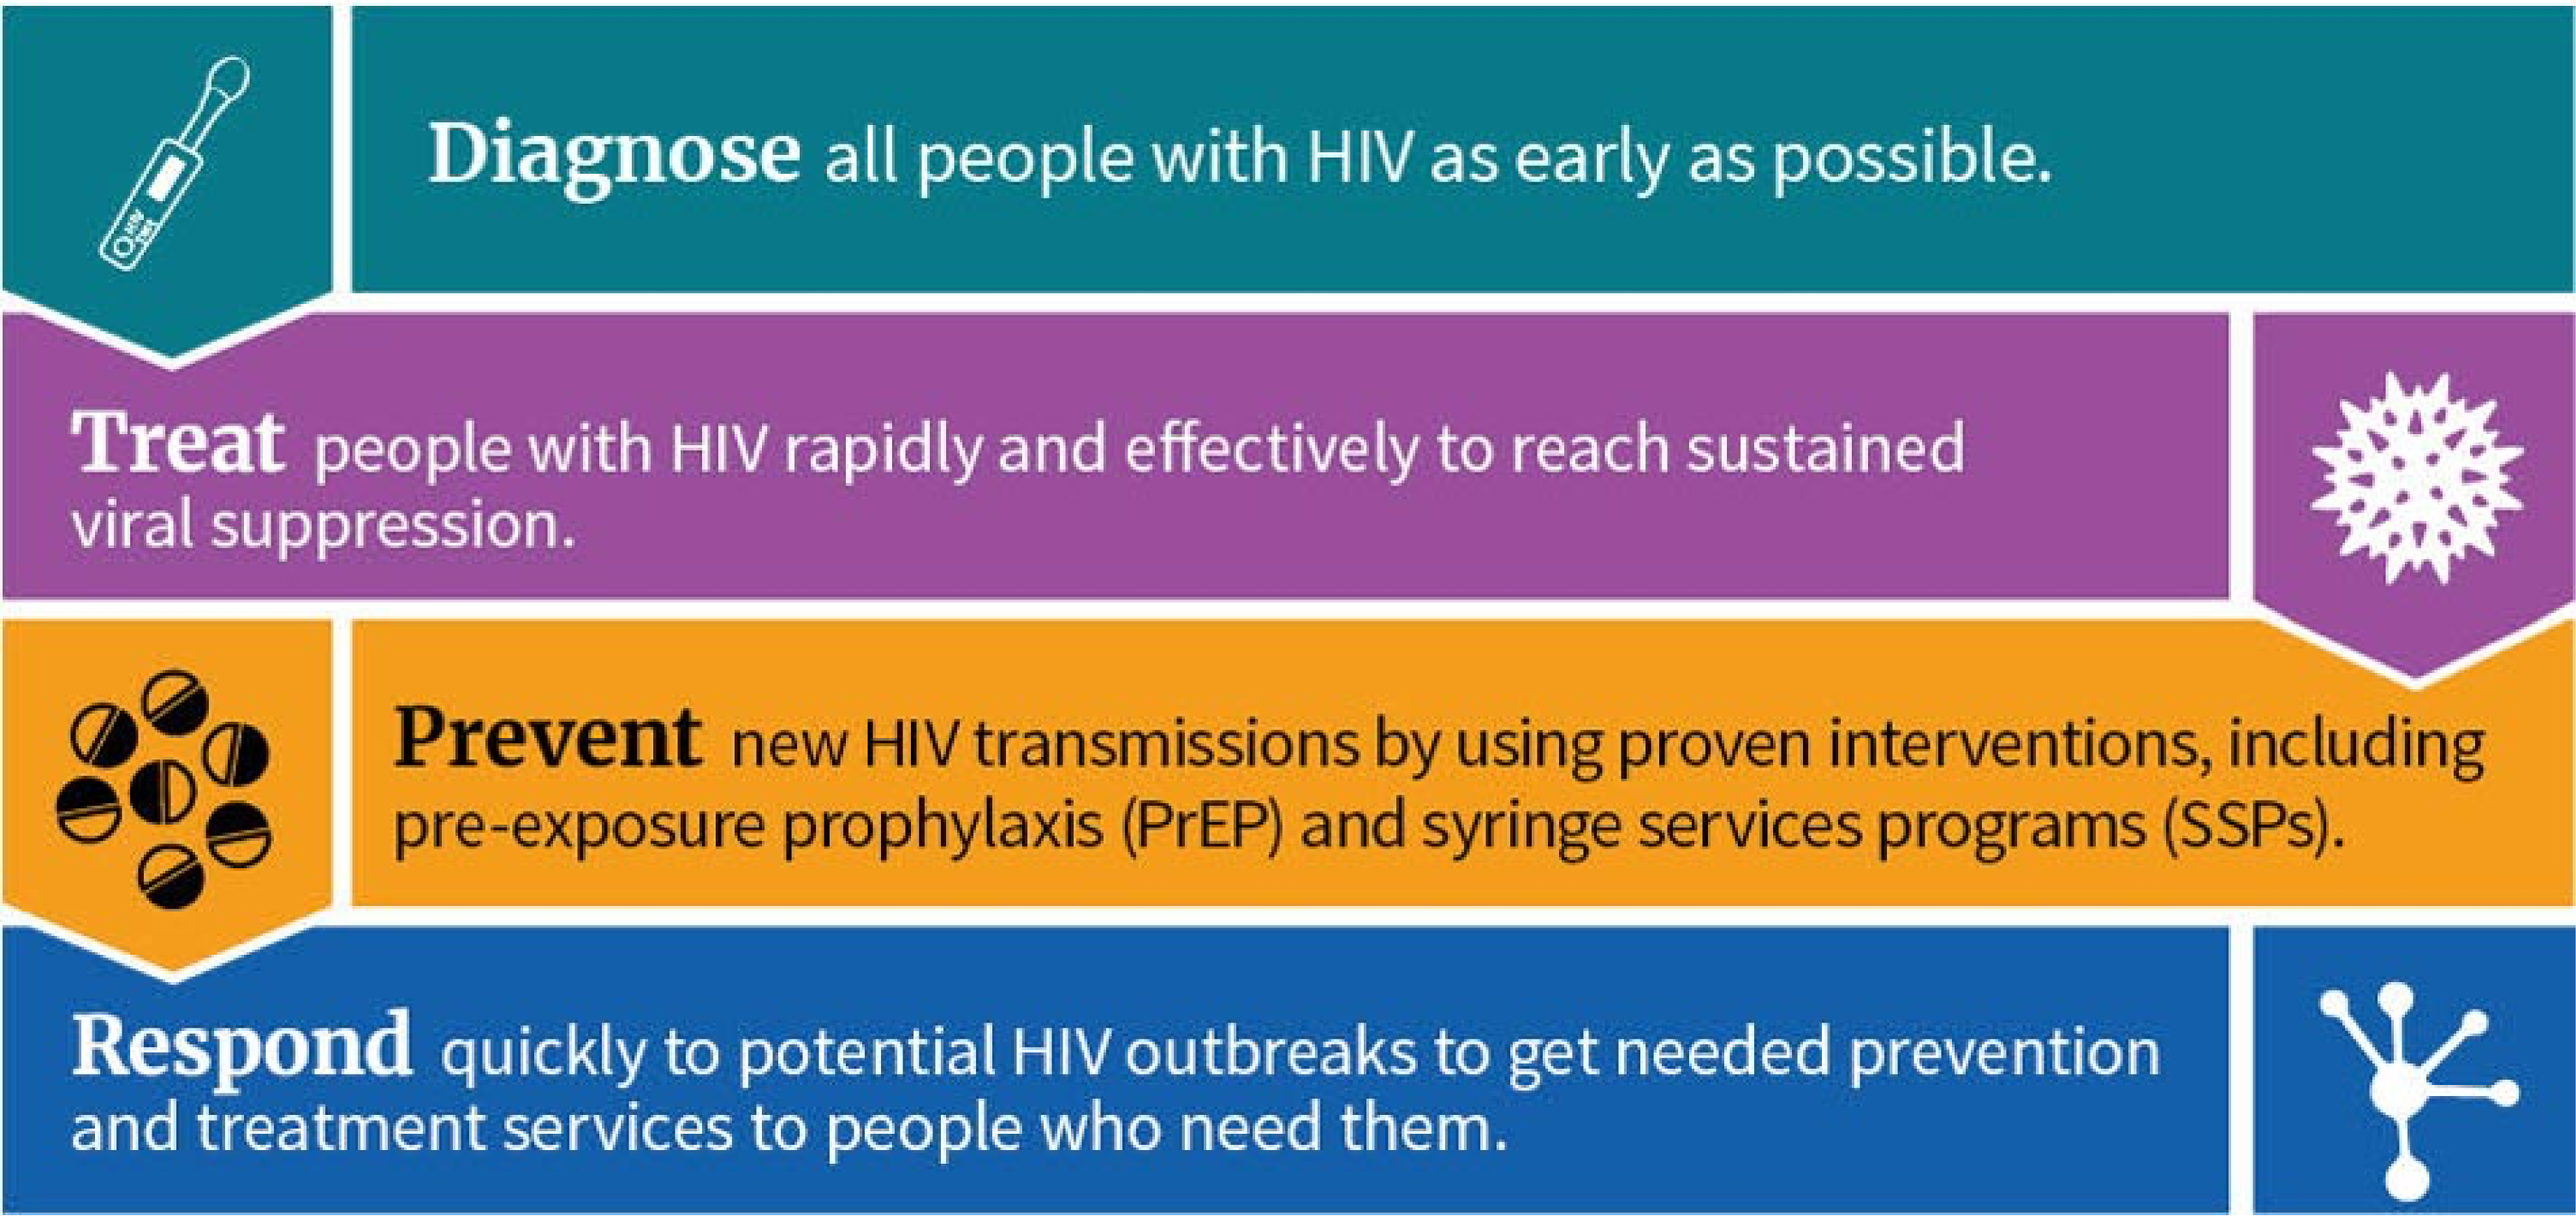 Diagnose all people with HIV as early as possible. Treat people with HIV rapidly and effectively to reach sustained viral suppression. Prevent new HIV transmissions by using proven interventions, including pre-exposure prophylaxis (PrEP) and syringe services programs (SSPs). Respond quickly to potential HIV outbreaks to get needed prevention and treatment services to people who need them.